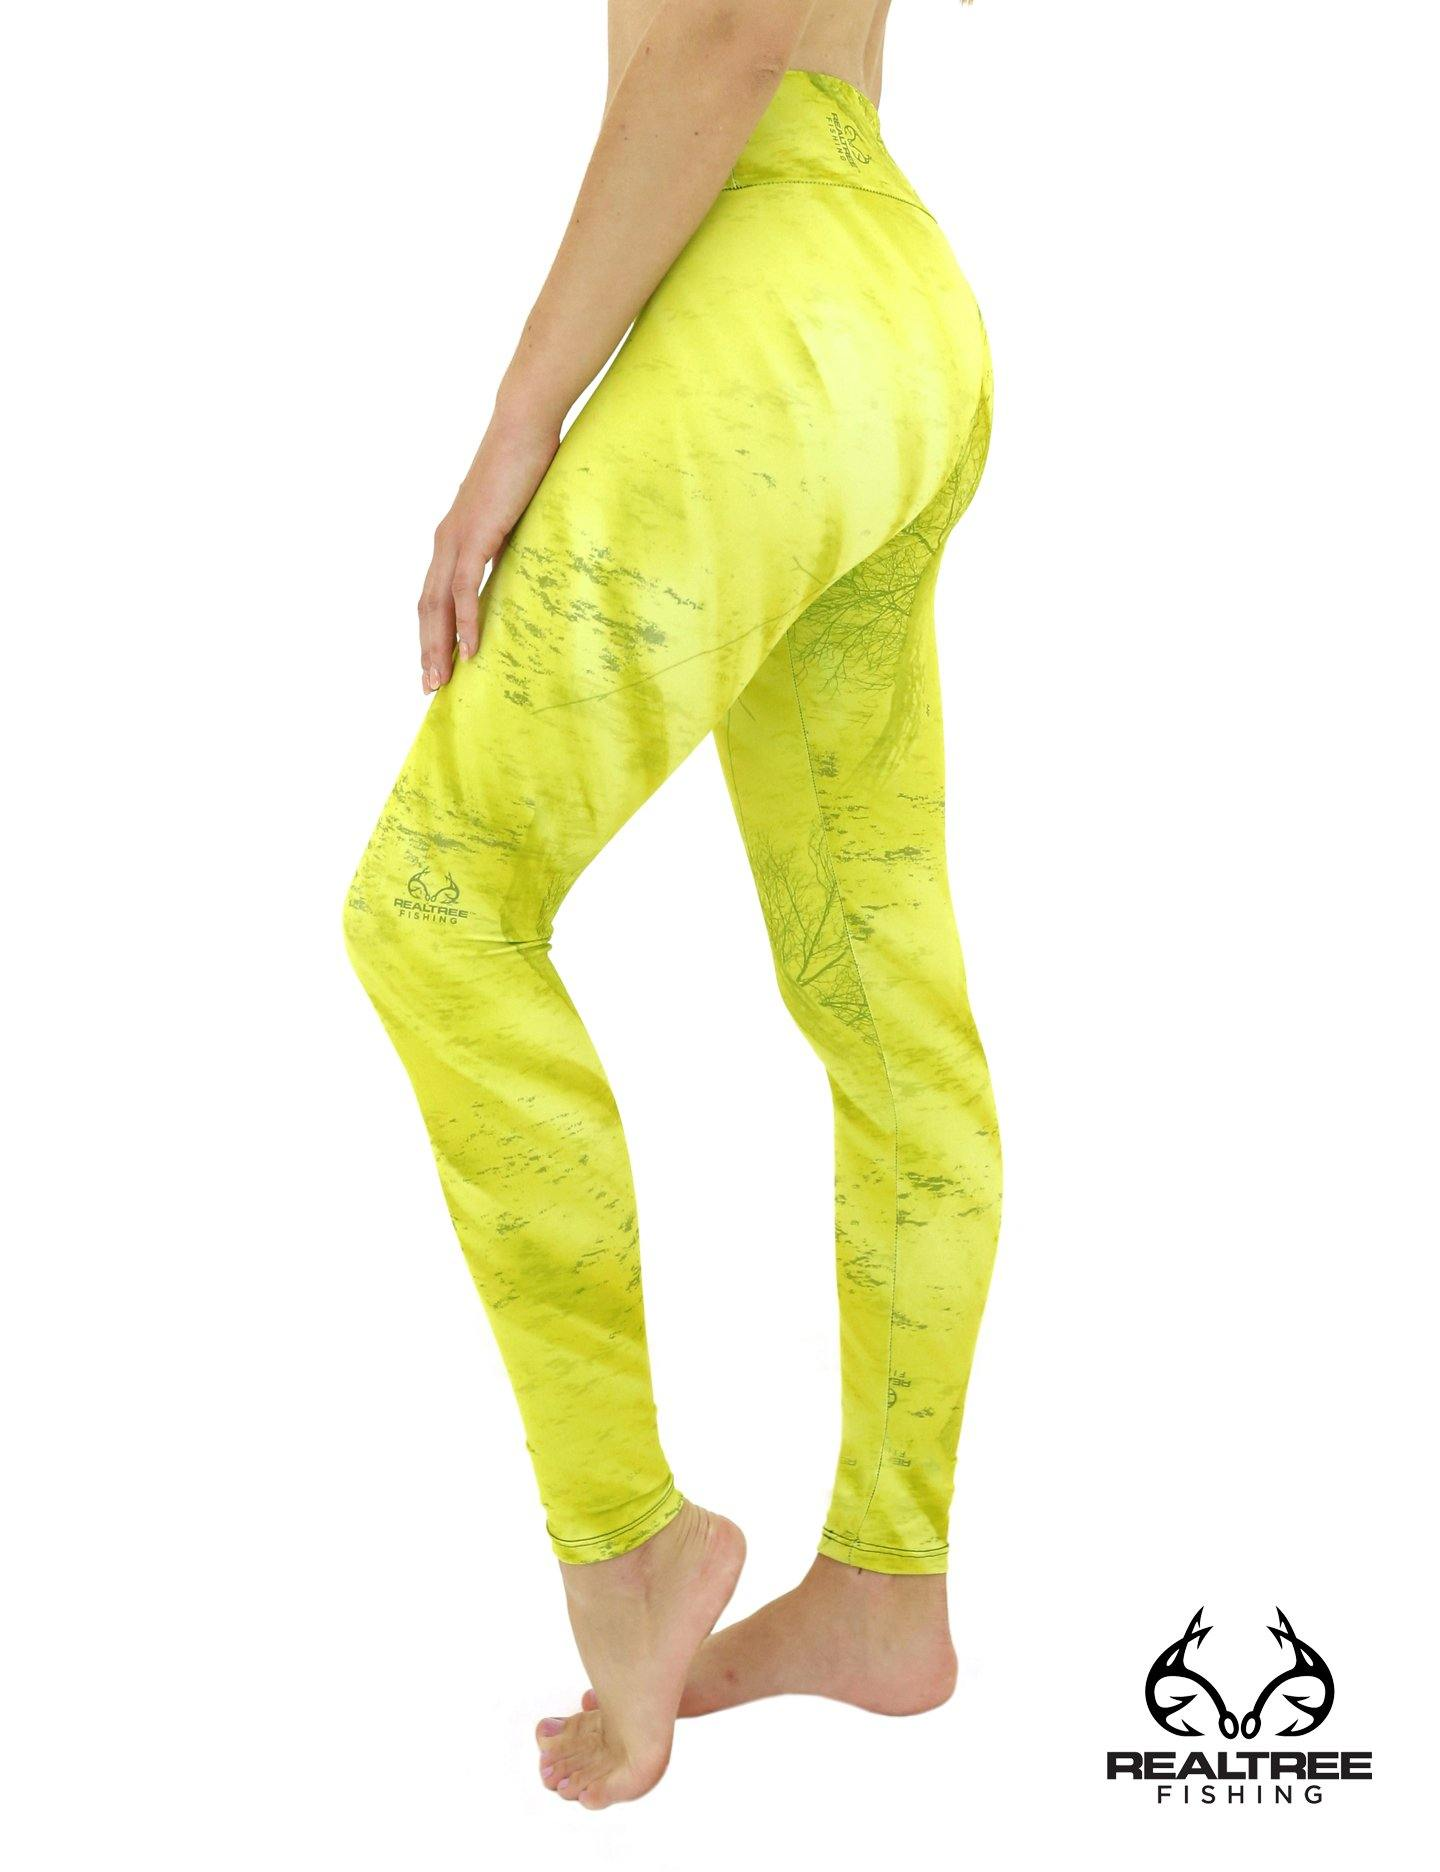 Apsara Leggings Low Waist Full Length, Realtree Fishing Light Lime - Apsara Style